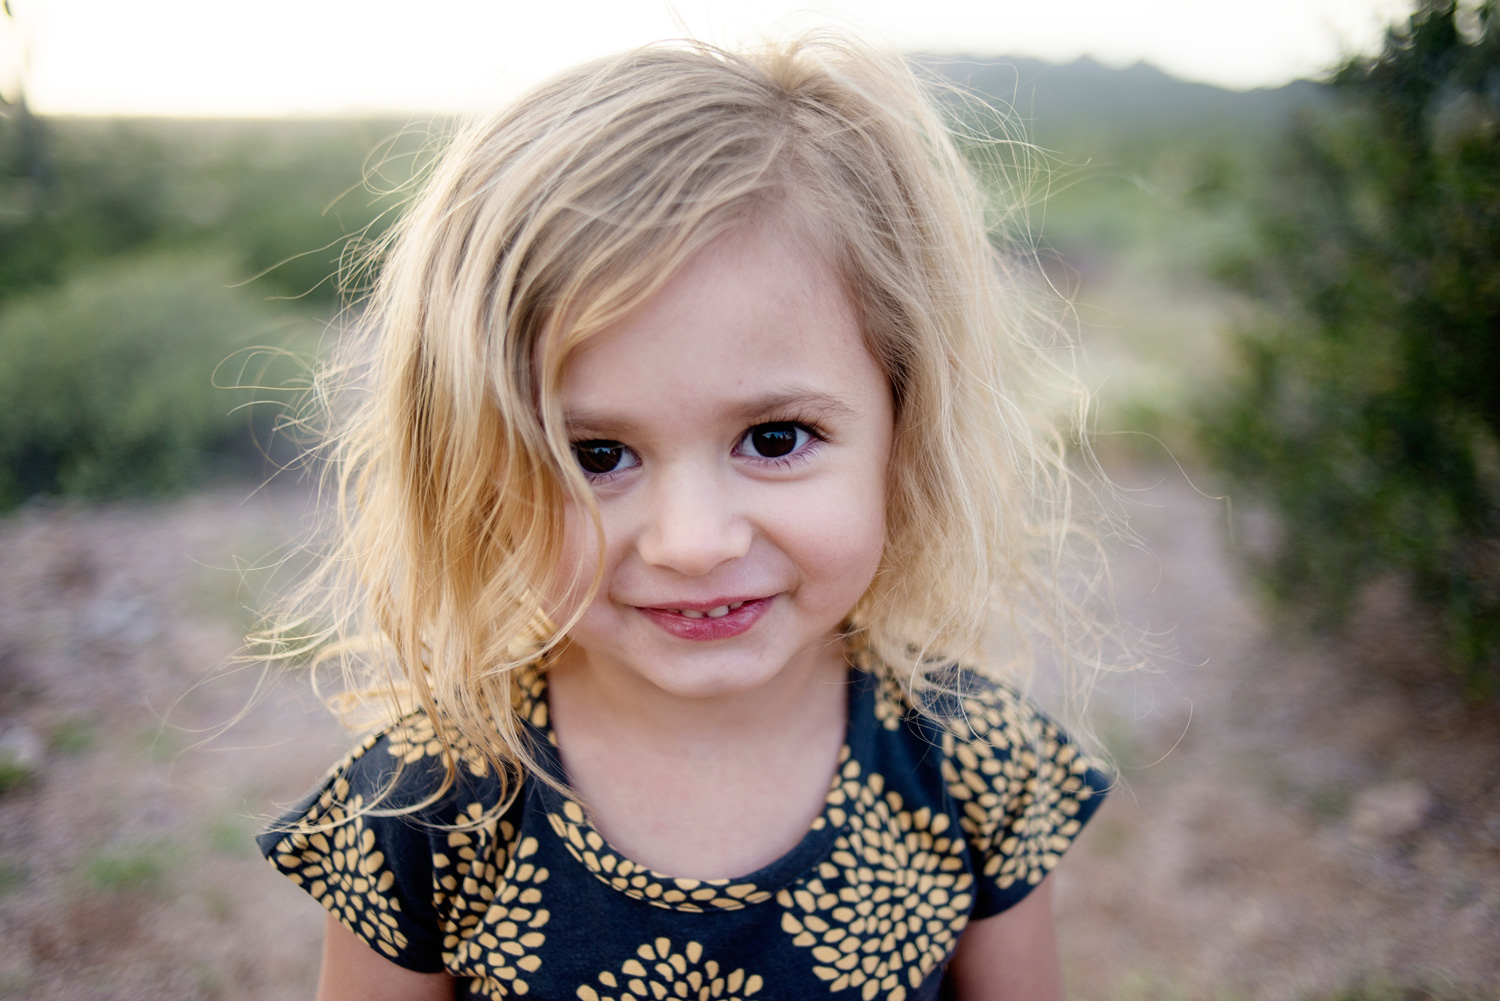 052-family-photographer-in-phoenix-takes-photos-of-children--kids--babies--families-in-mesa-arizona.jpg